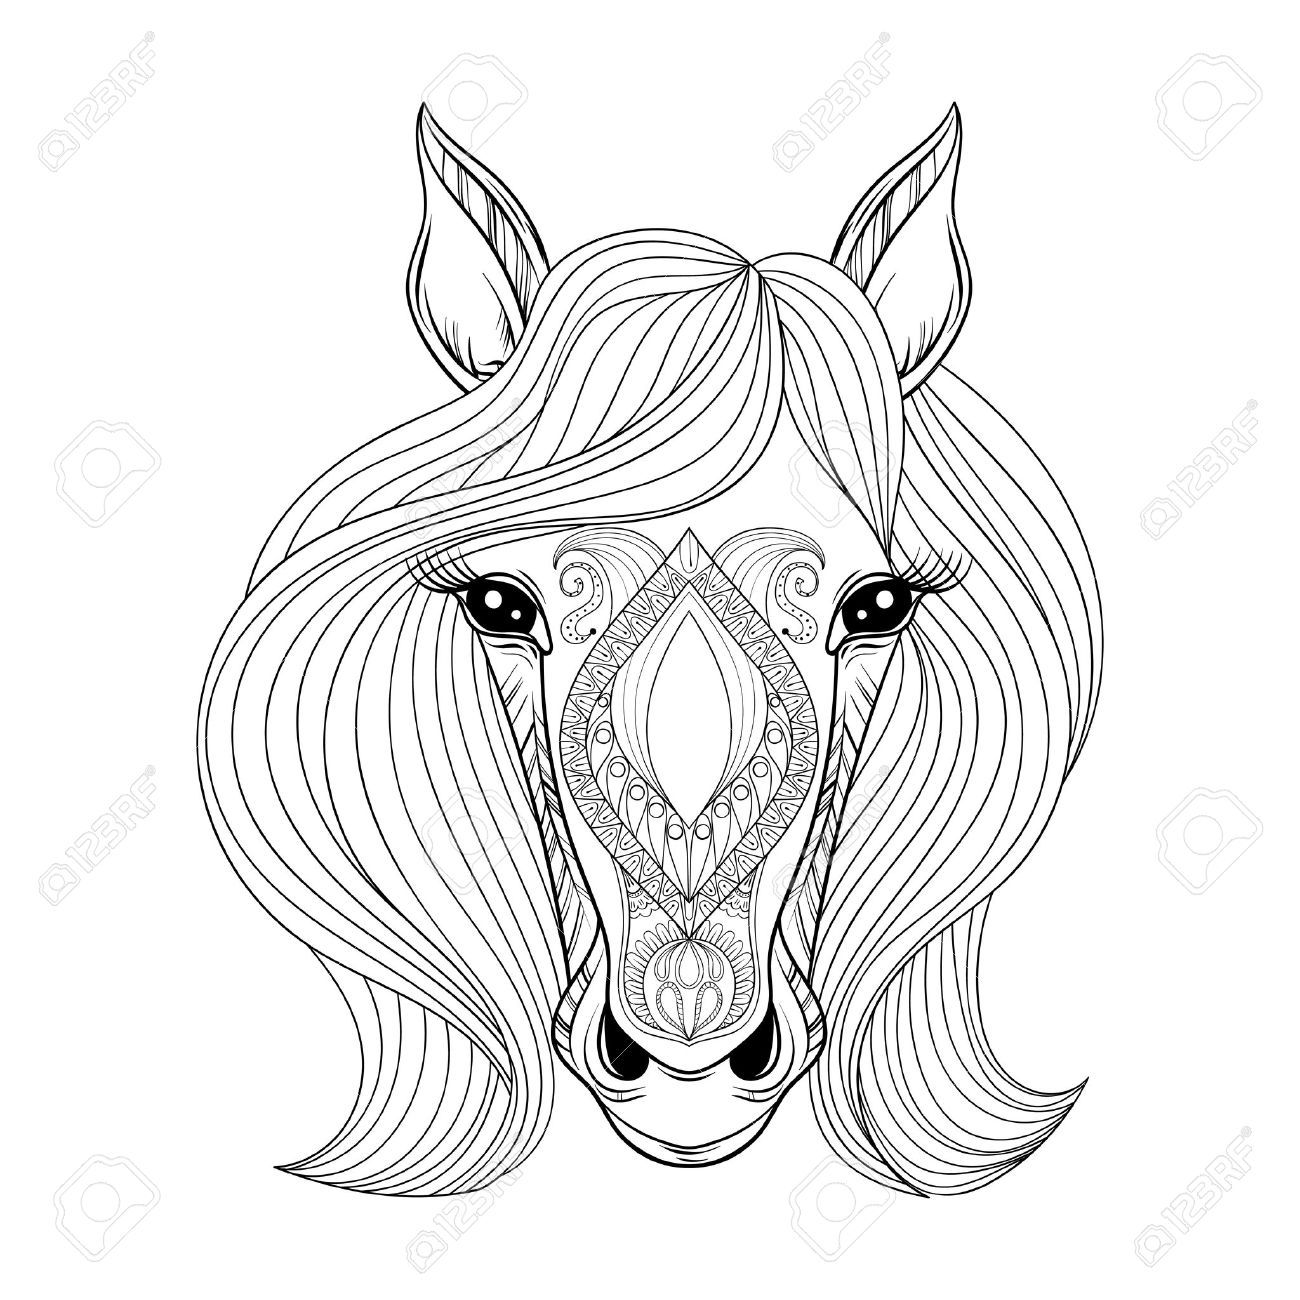 Related Image Horse Face Horse Face Drawing Coloring Pages [ 1300 x 1300 Pixel ]